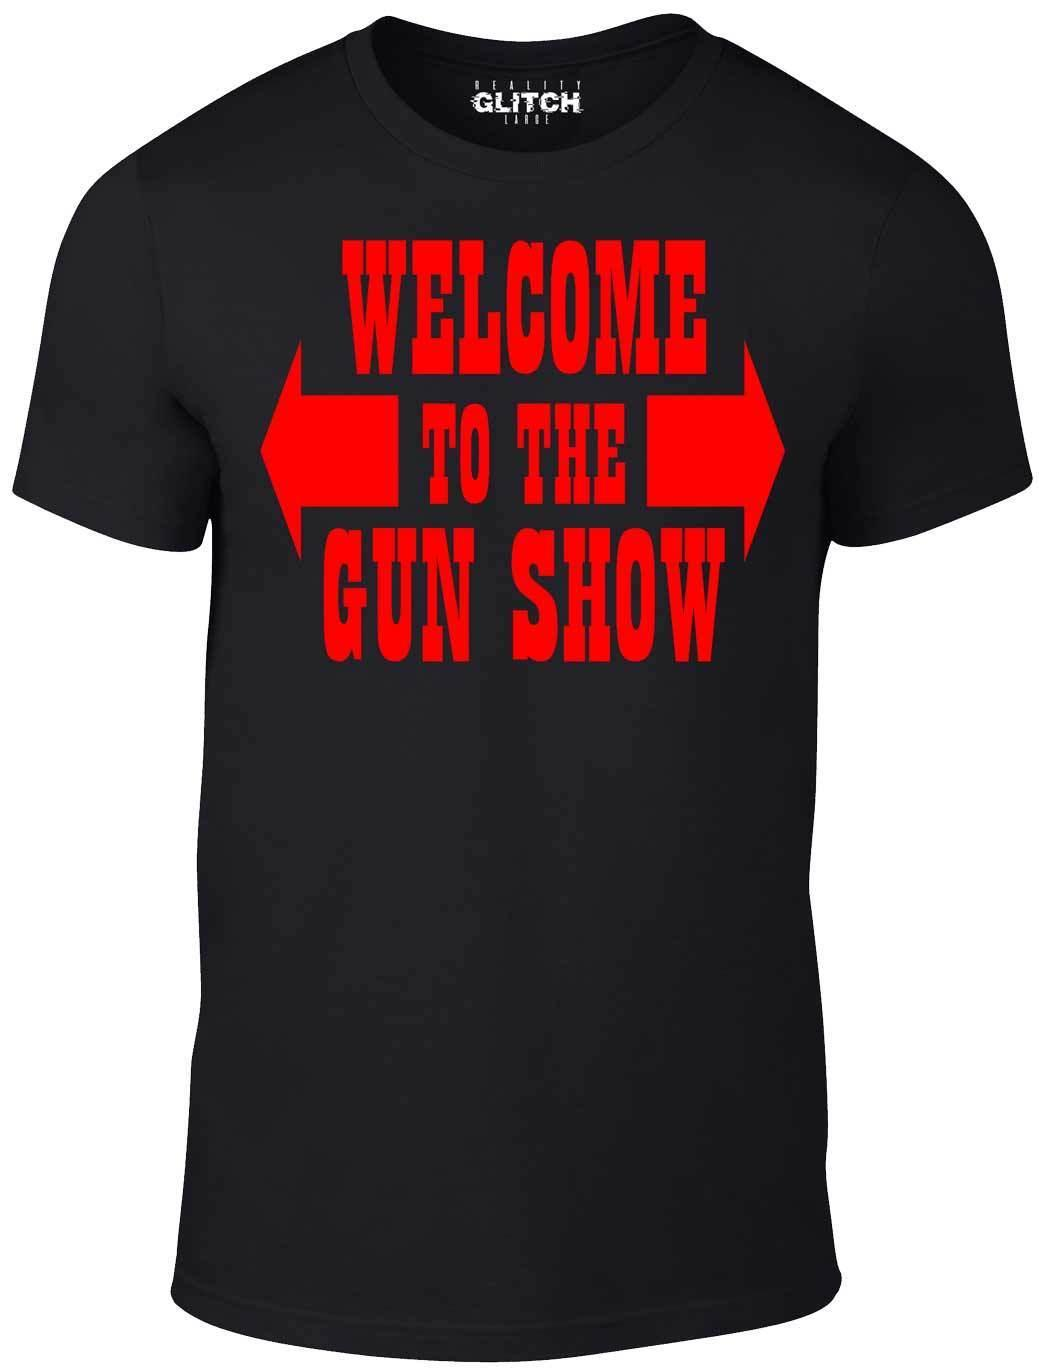 Welcome To The Gun Show T Shirt - Funny Muscle Two Tickets Arms Guns Work Out Cool Casual pride t shirt men Unisex New Fashion